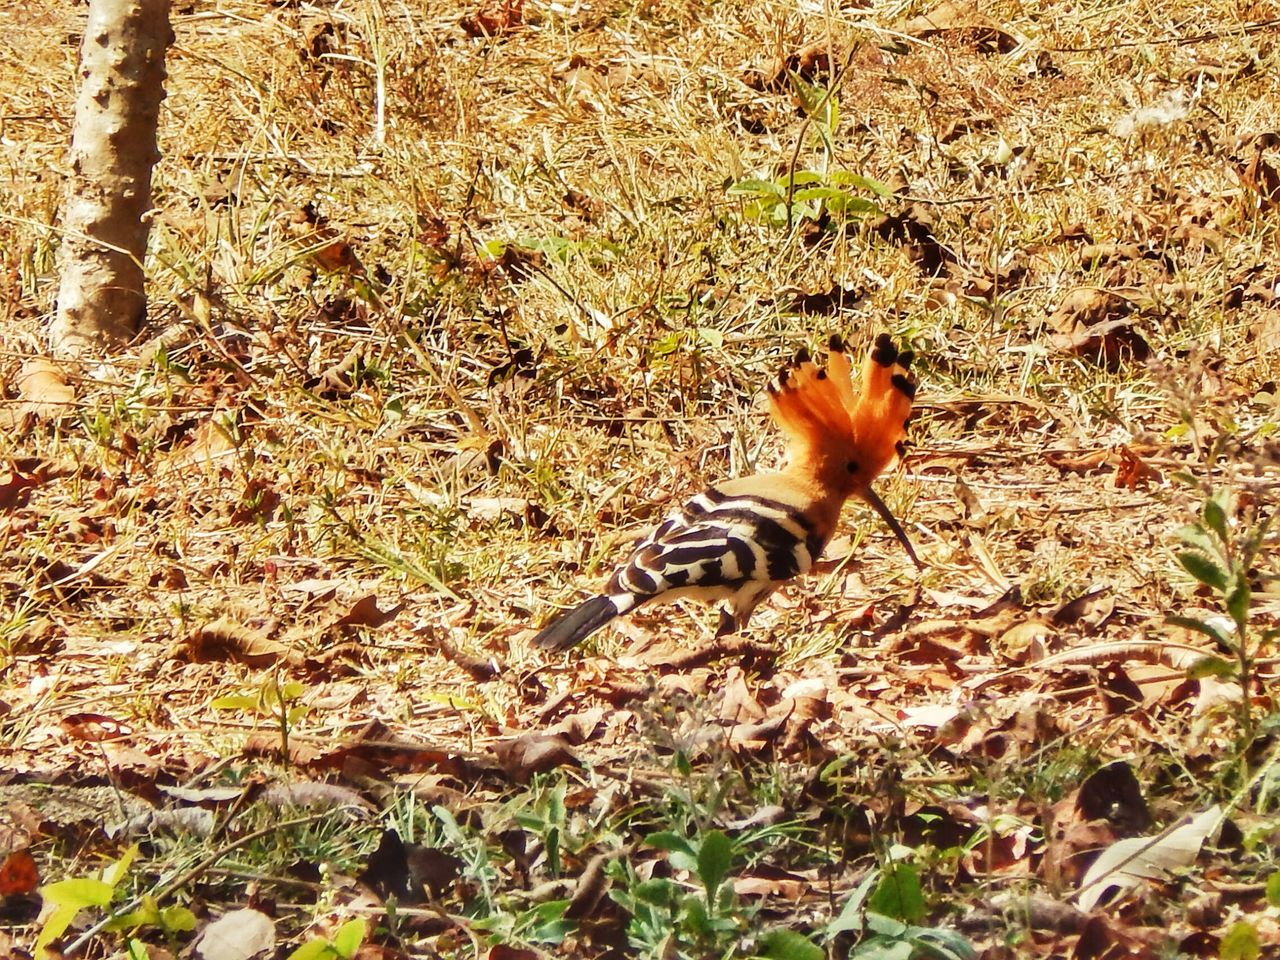 Regular visitor this time of year. Hoopoe EyeEm Birds Crest Digging EyeEm Nature Lover EyeEm Thailand